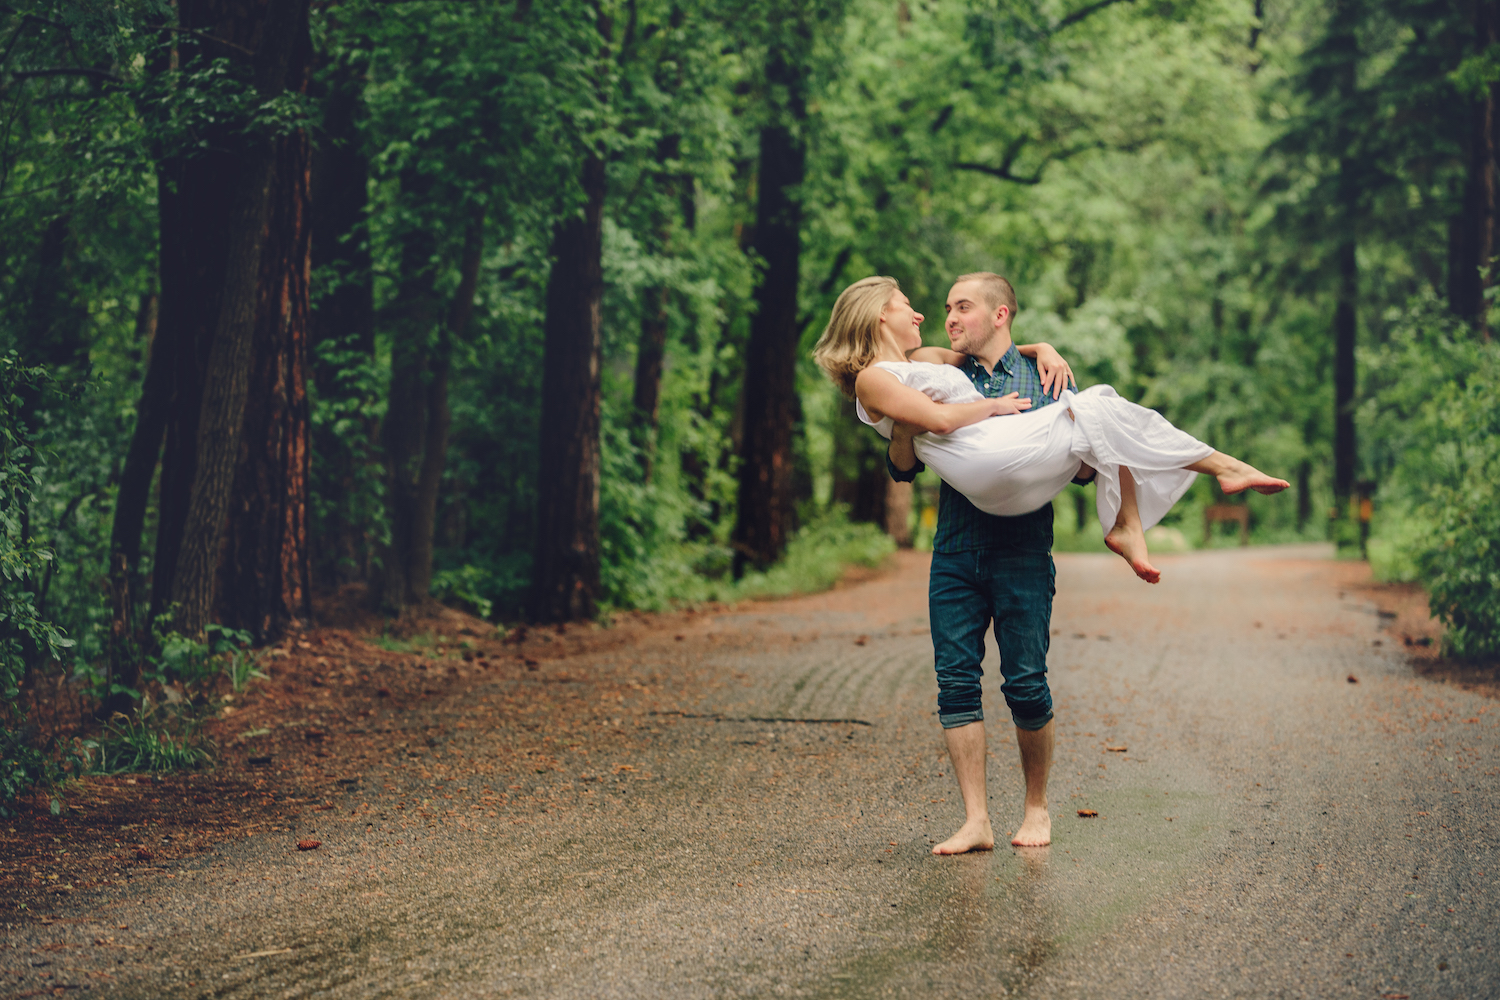 It never rains in Arizona, right?  June is a little early for monsoon season in No. Arizona, and that made this day particularly special. It was warm and foggy, and the creeks were swelling with rain.  What an exciting engagement session . . . we had a blast, using the weather as a prop!